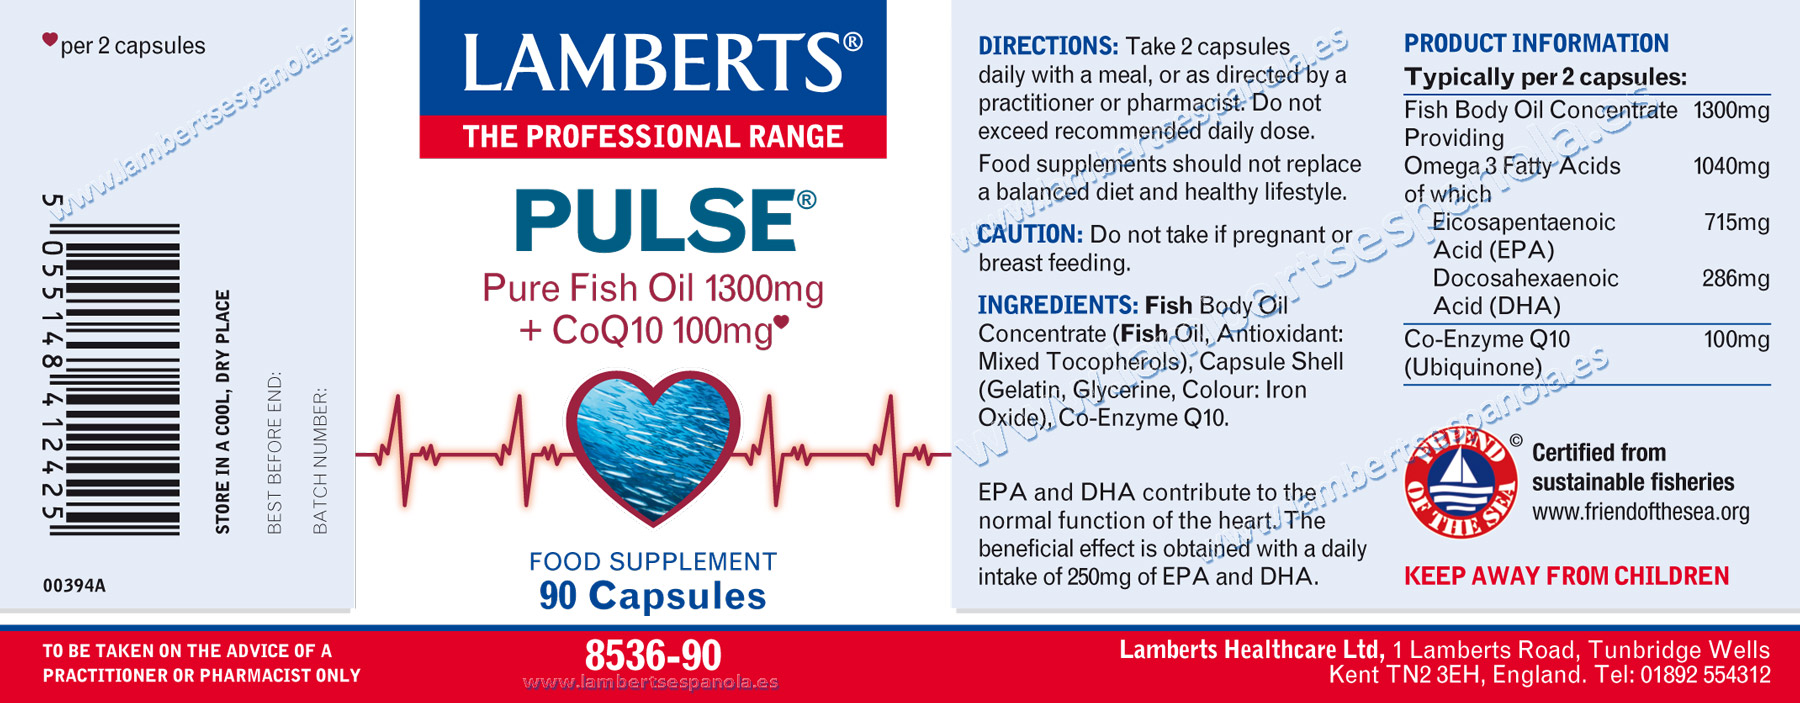 Label of Pulse® from Lamberts with its properties and indications